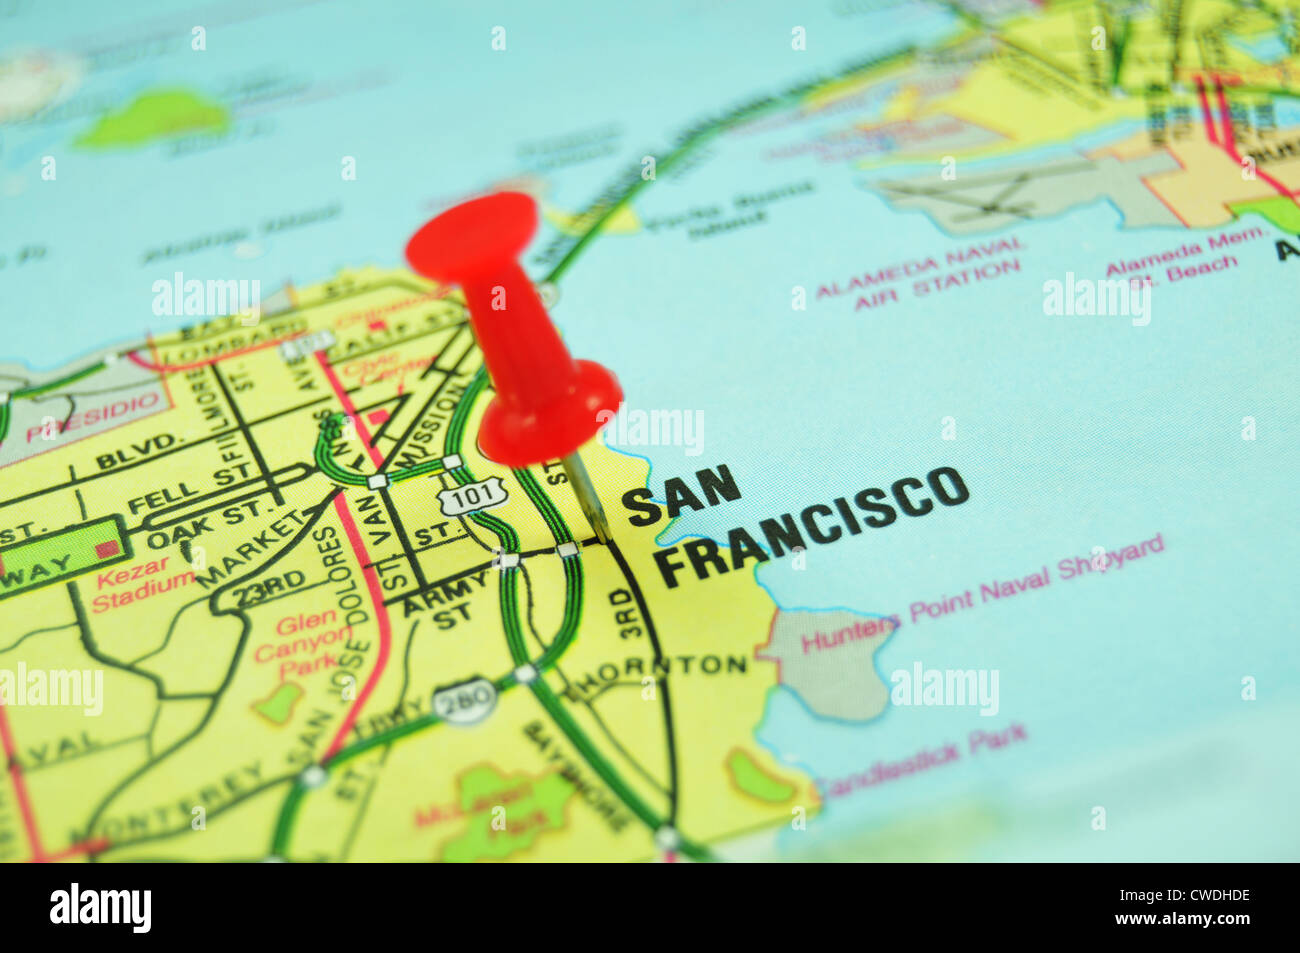 San Francisco city marked with red push